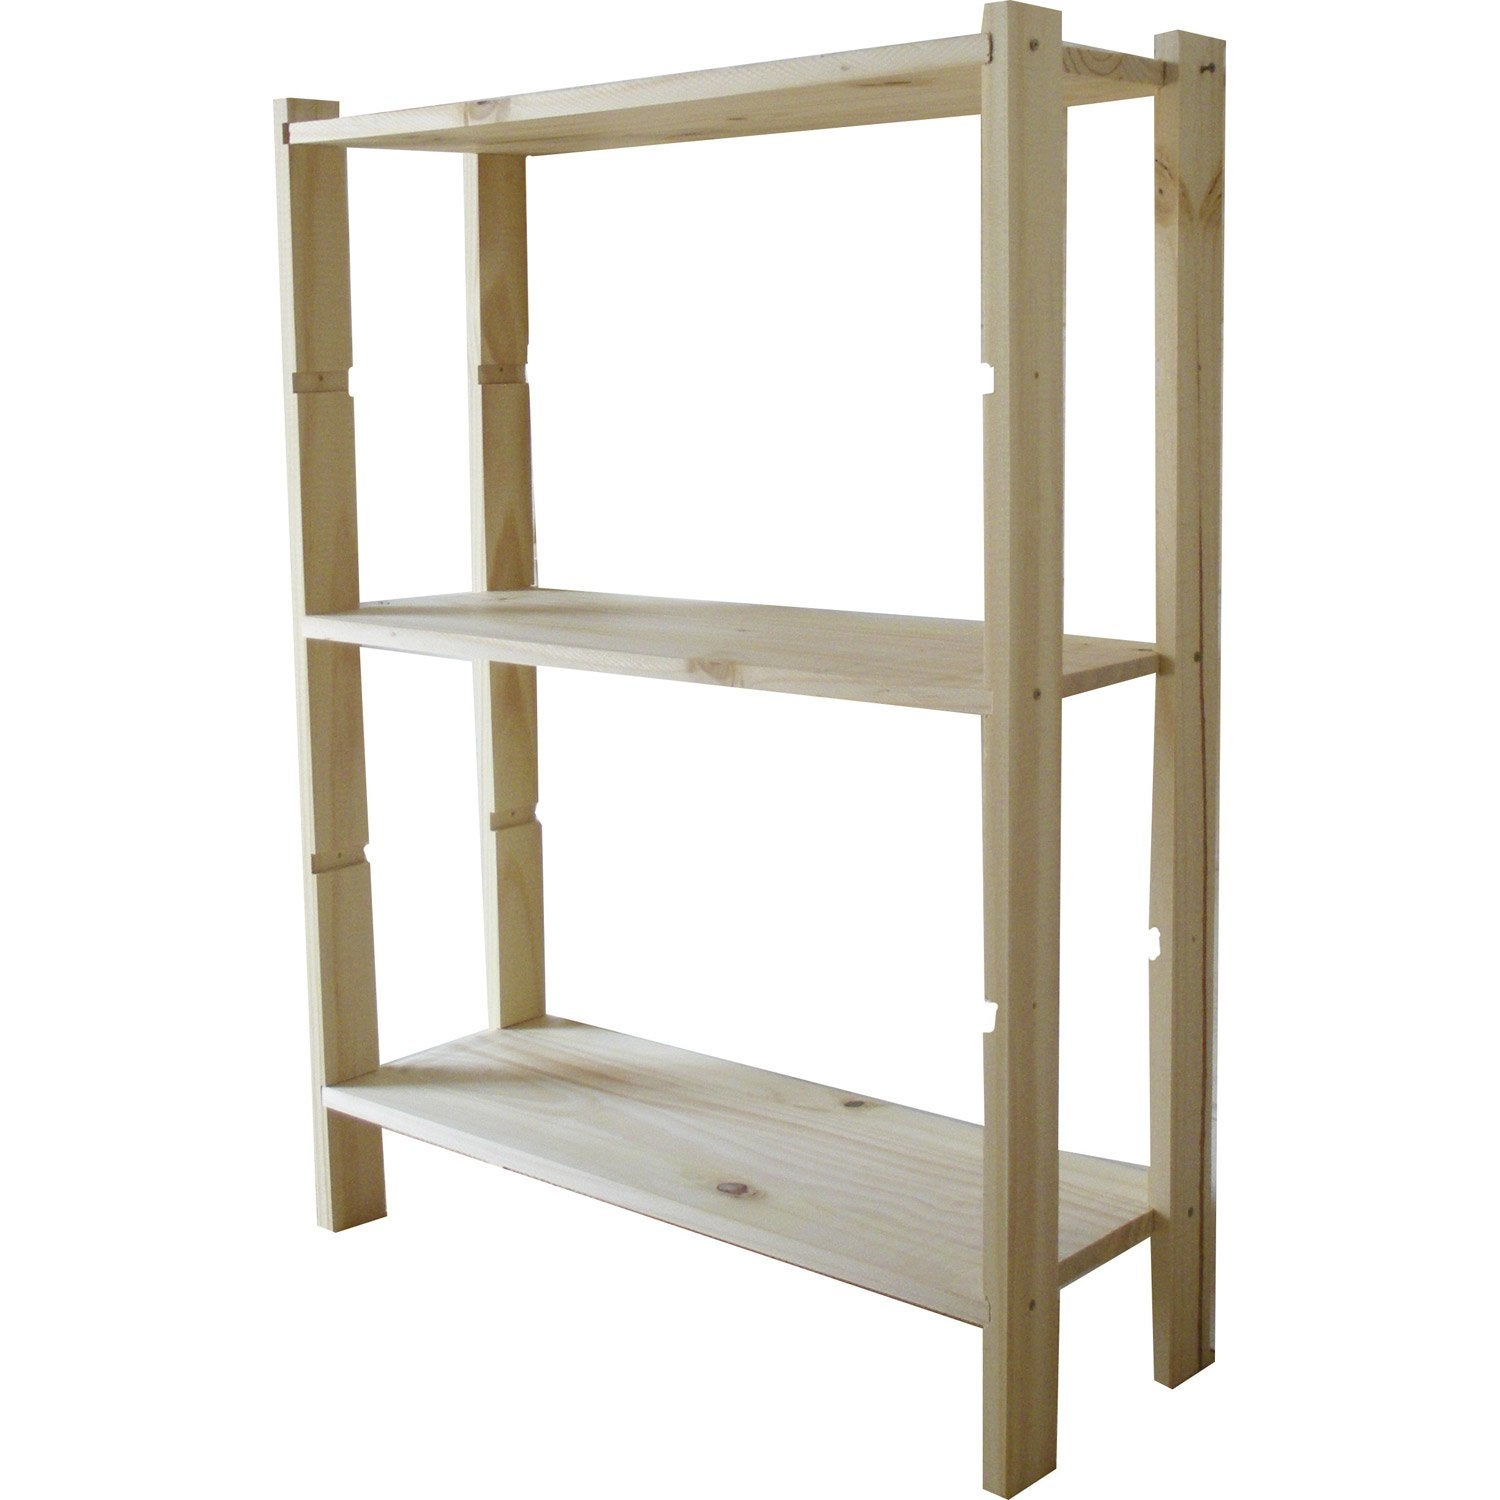 Etag re pin 3 tablettes x x cm leroy - Etagere chaussure leroy merlin ...